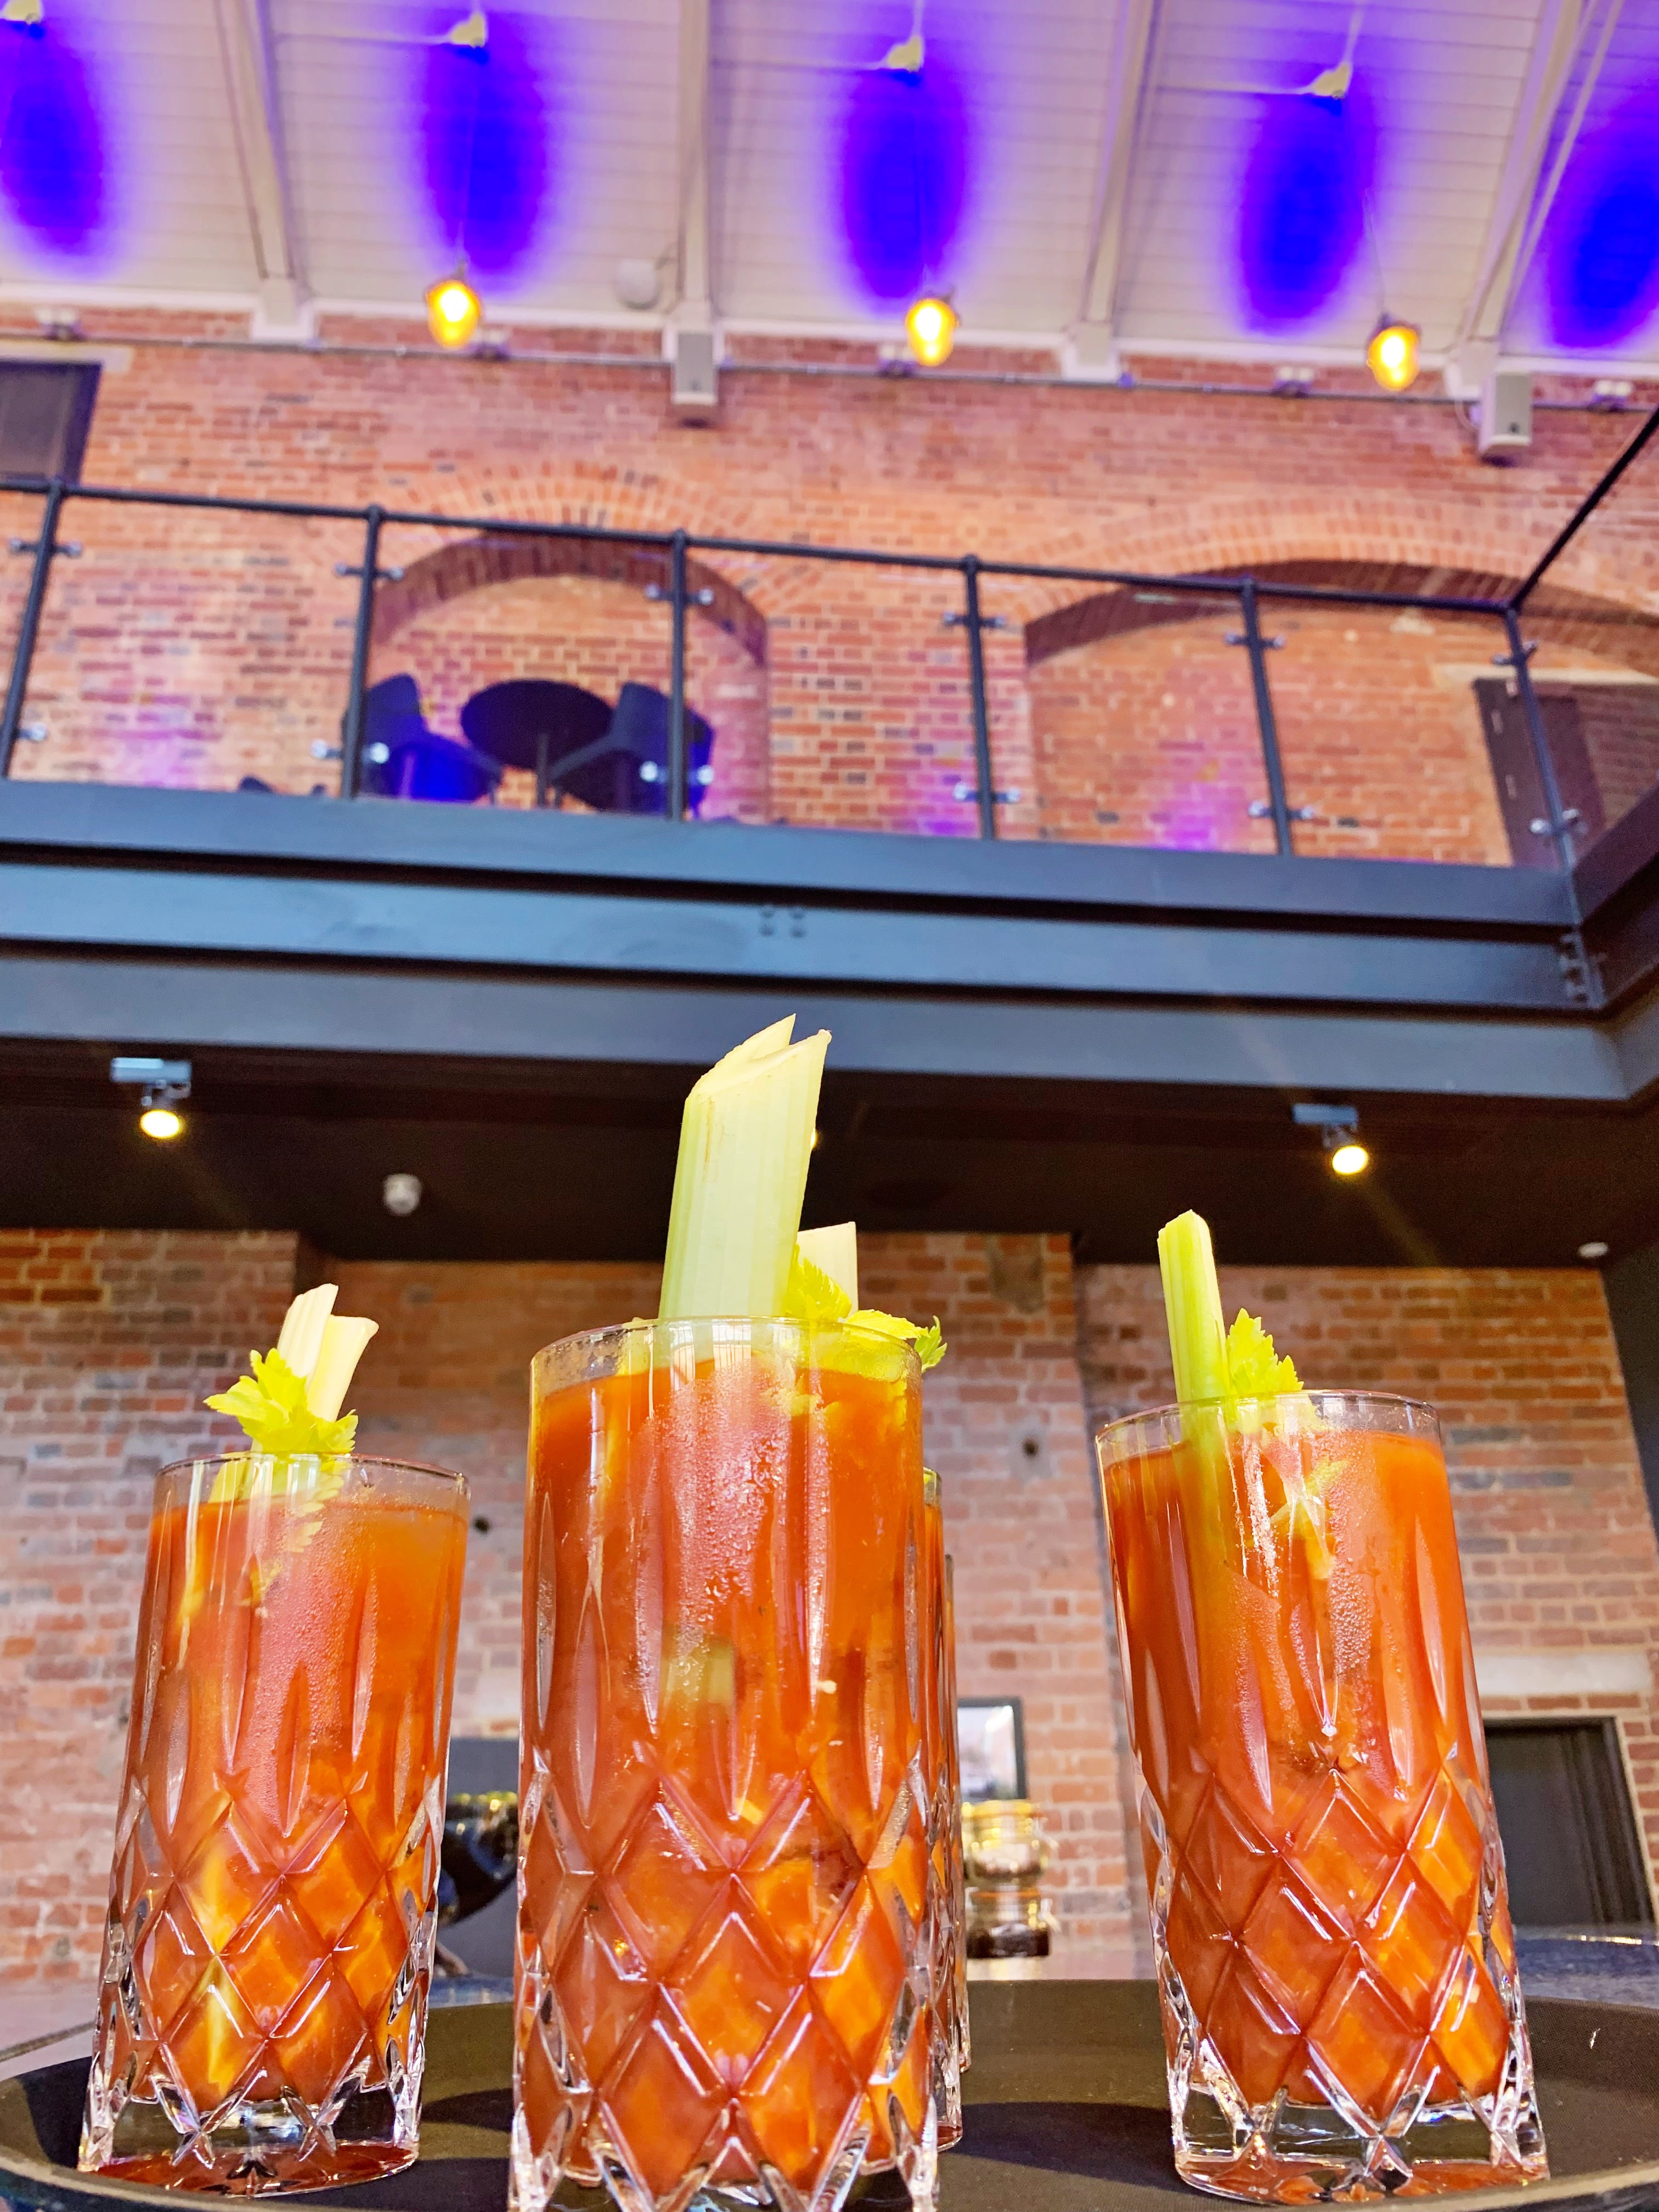 Cocktails at Bombay Sapphire Distillery